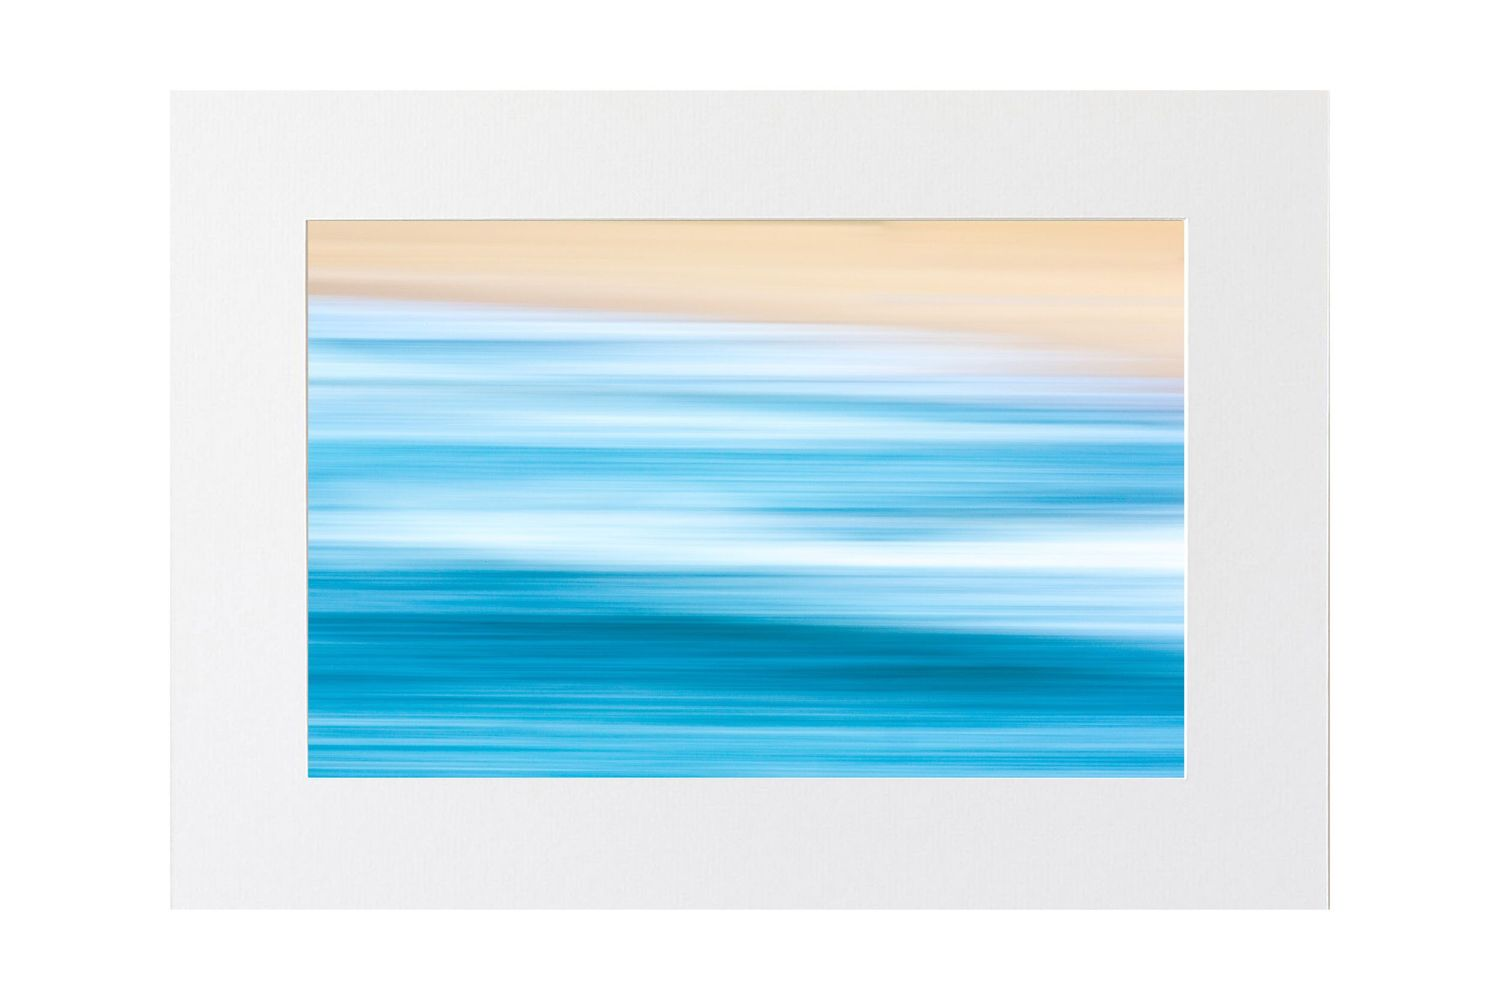 Salty Gallery offers matted prints of its ocean imagery